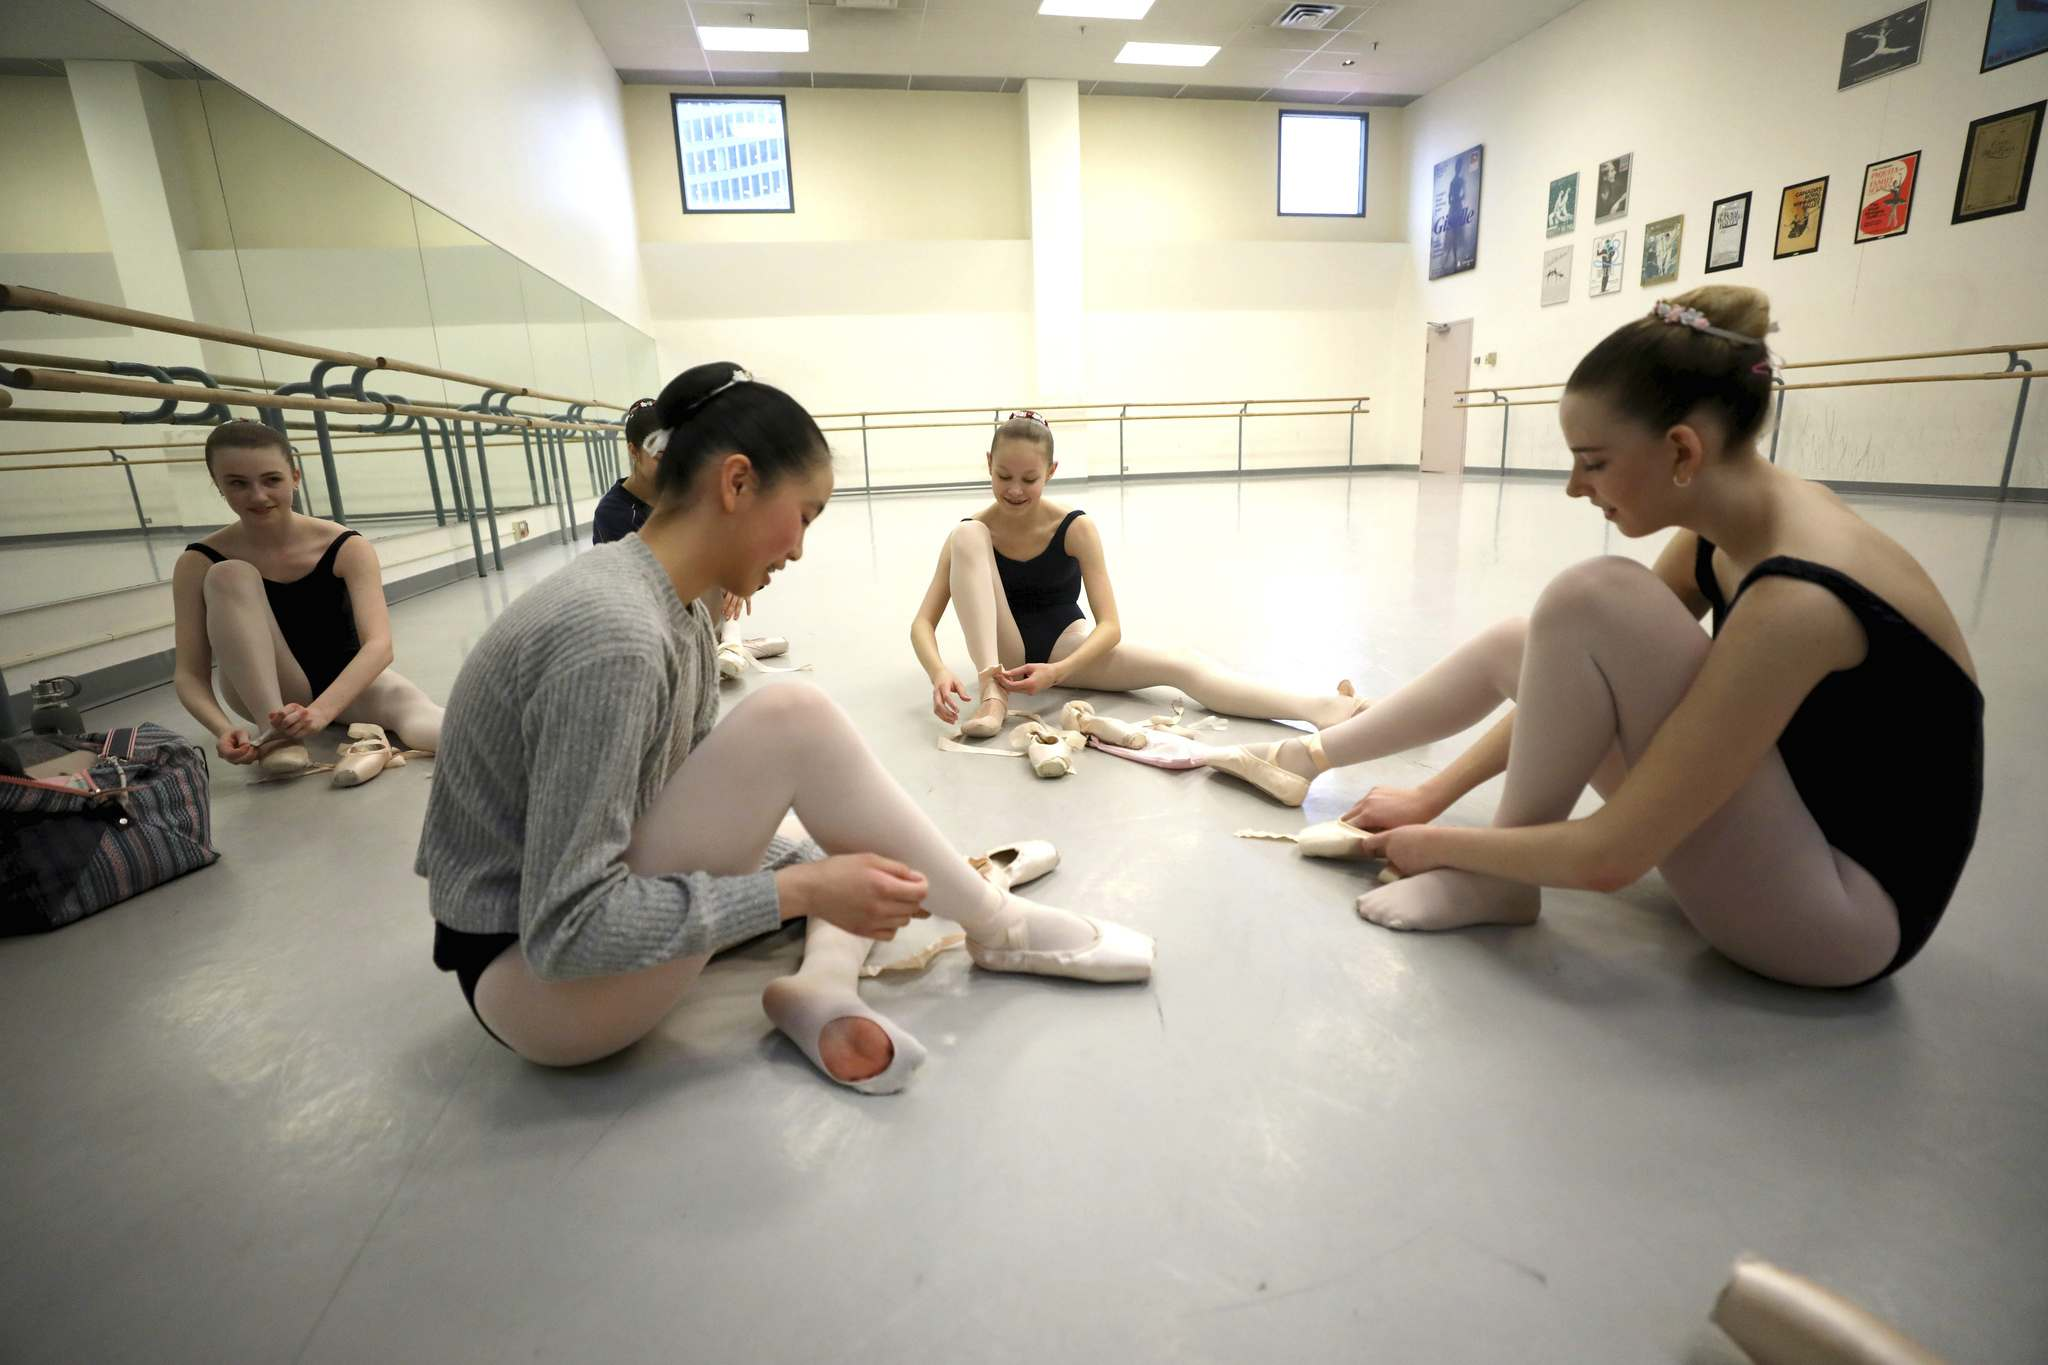 The young dancers have had to give up activities such as skiing and snowboarding to avoid injury.